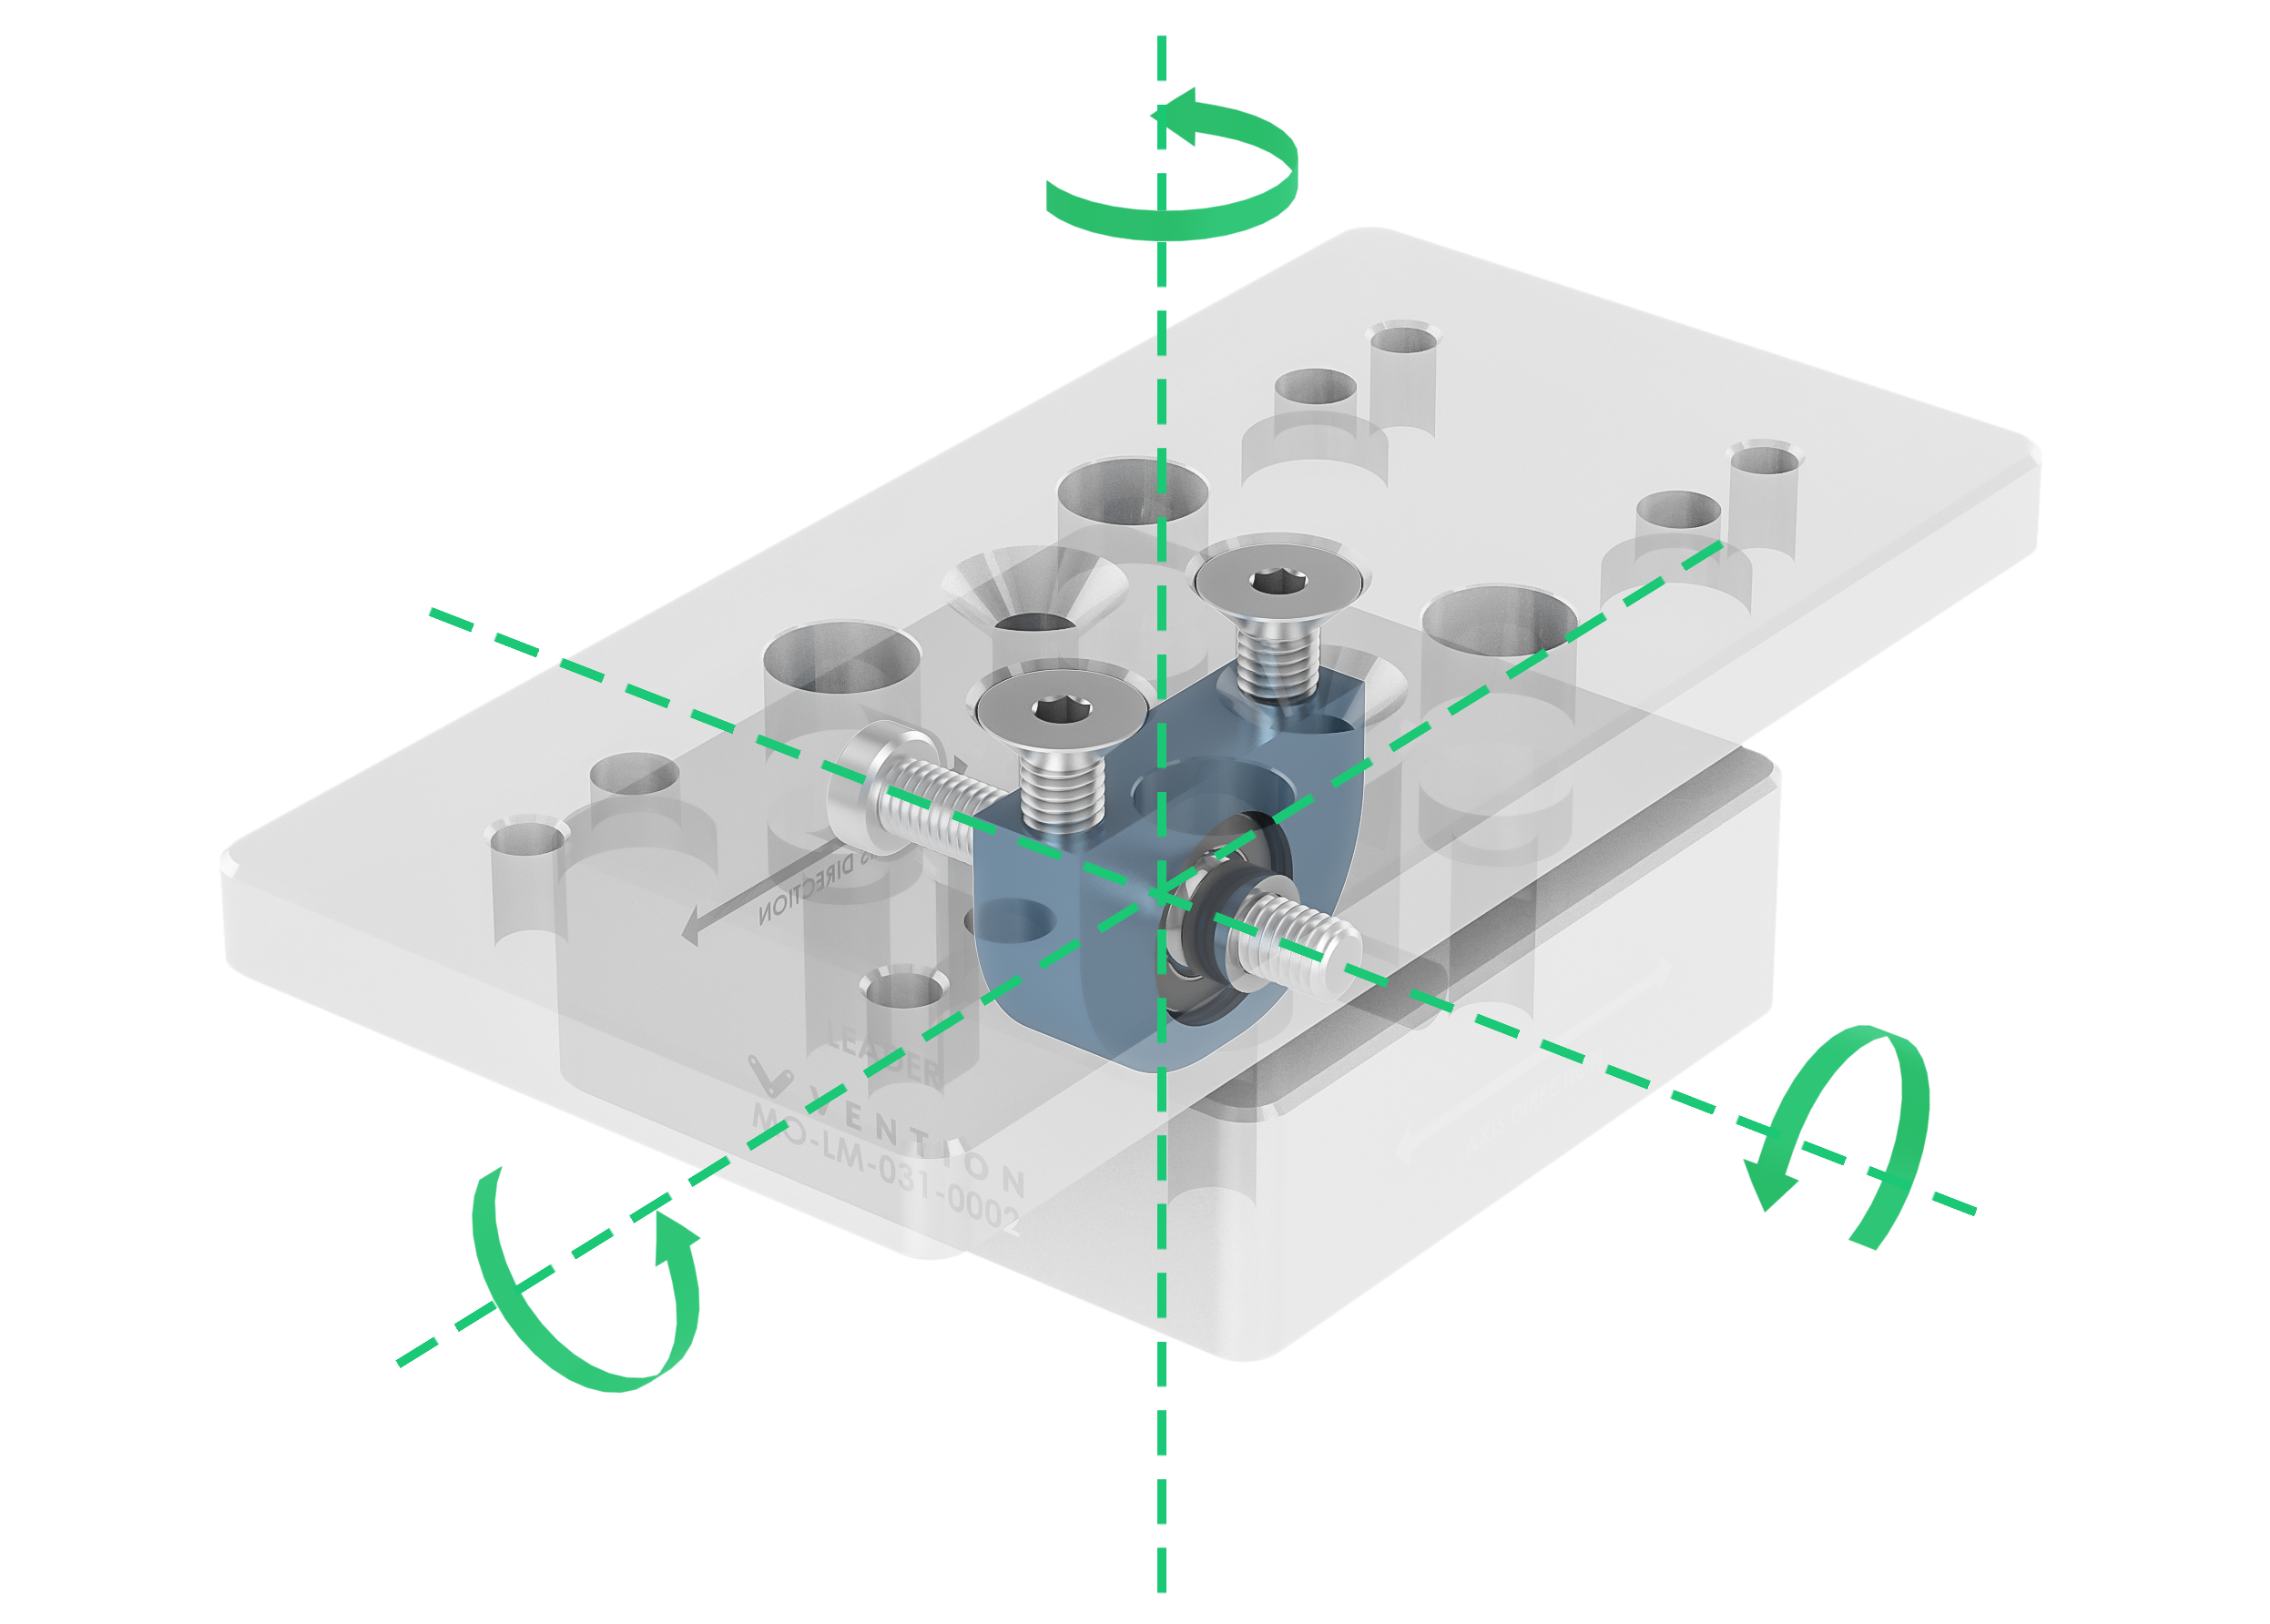 Figure 3: Self-aligning leader mount, with degrees of freedom (three rotational) indicated by solid green arrows. Note that there is no translational degree of freedom.